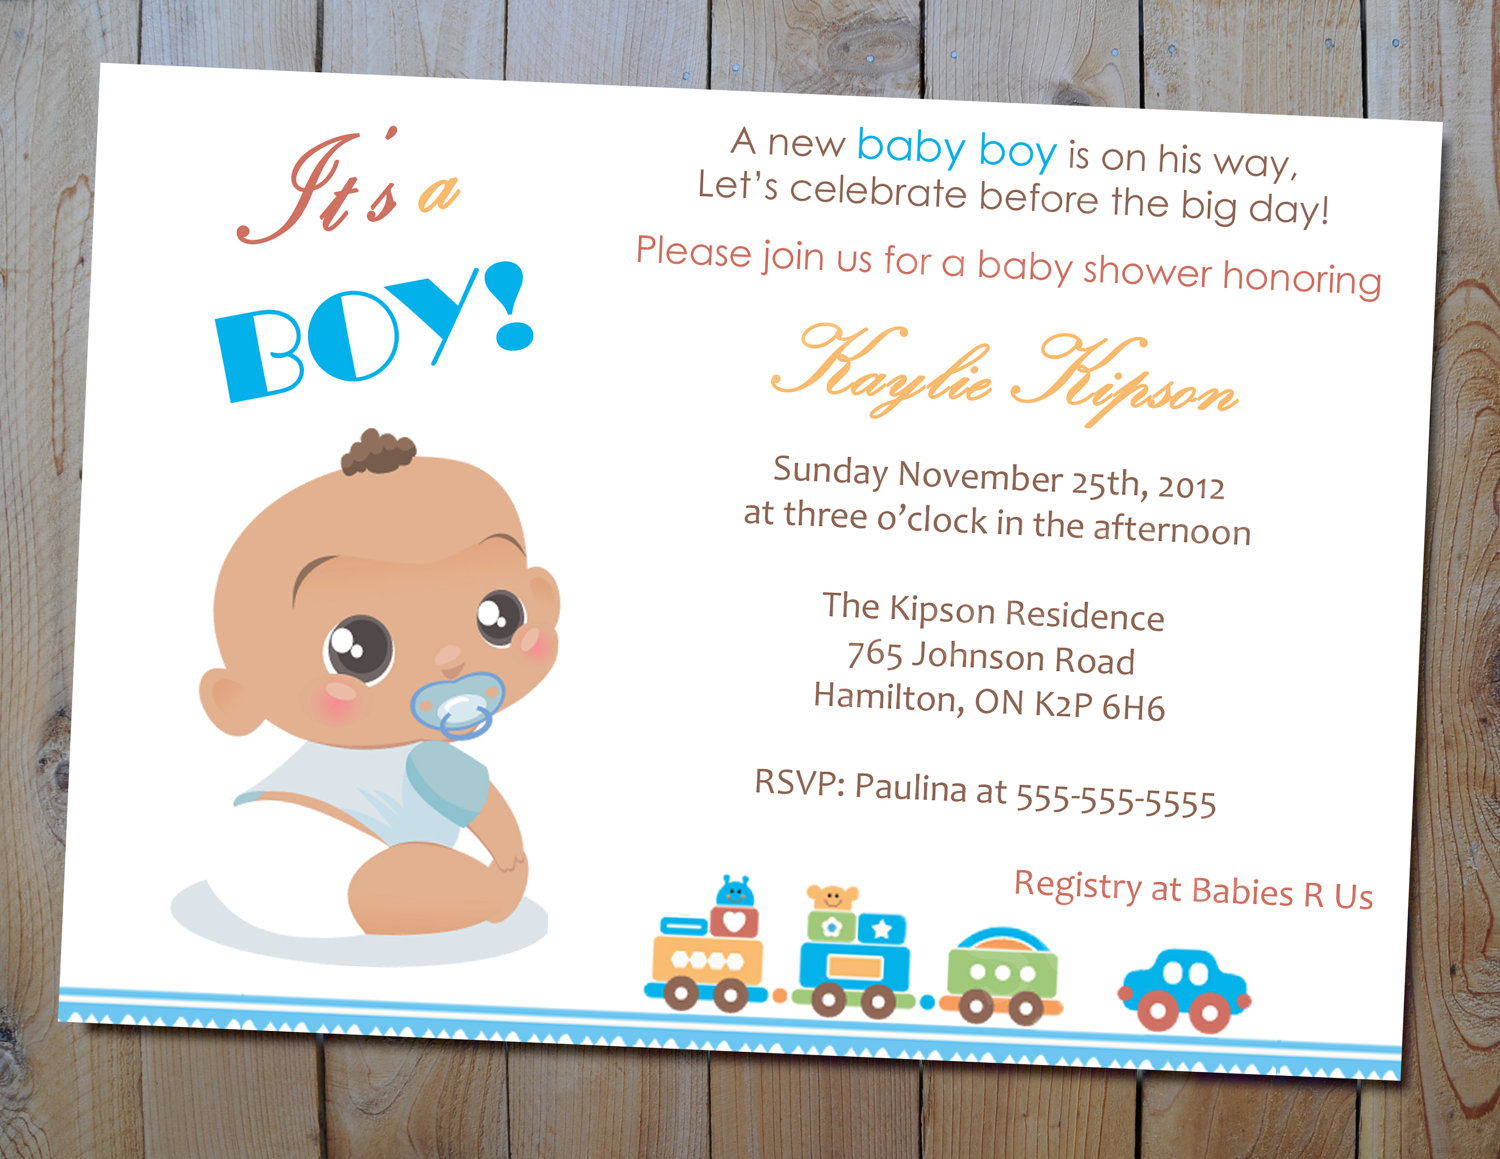 10 Nice Cute Ideas For Baby Shower Invitations baby shower invitations ideas for boy omega center ideas for